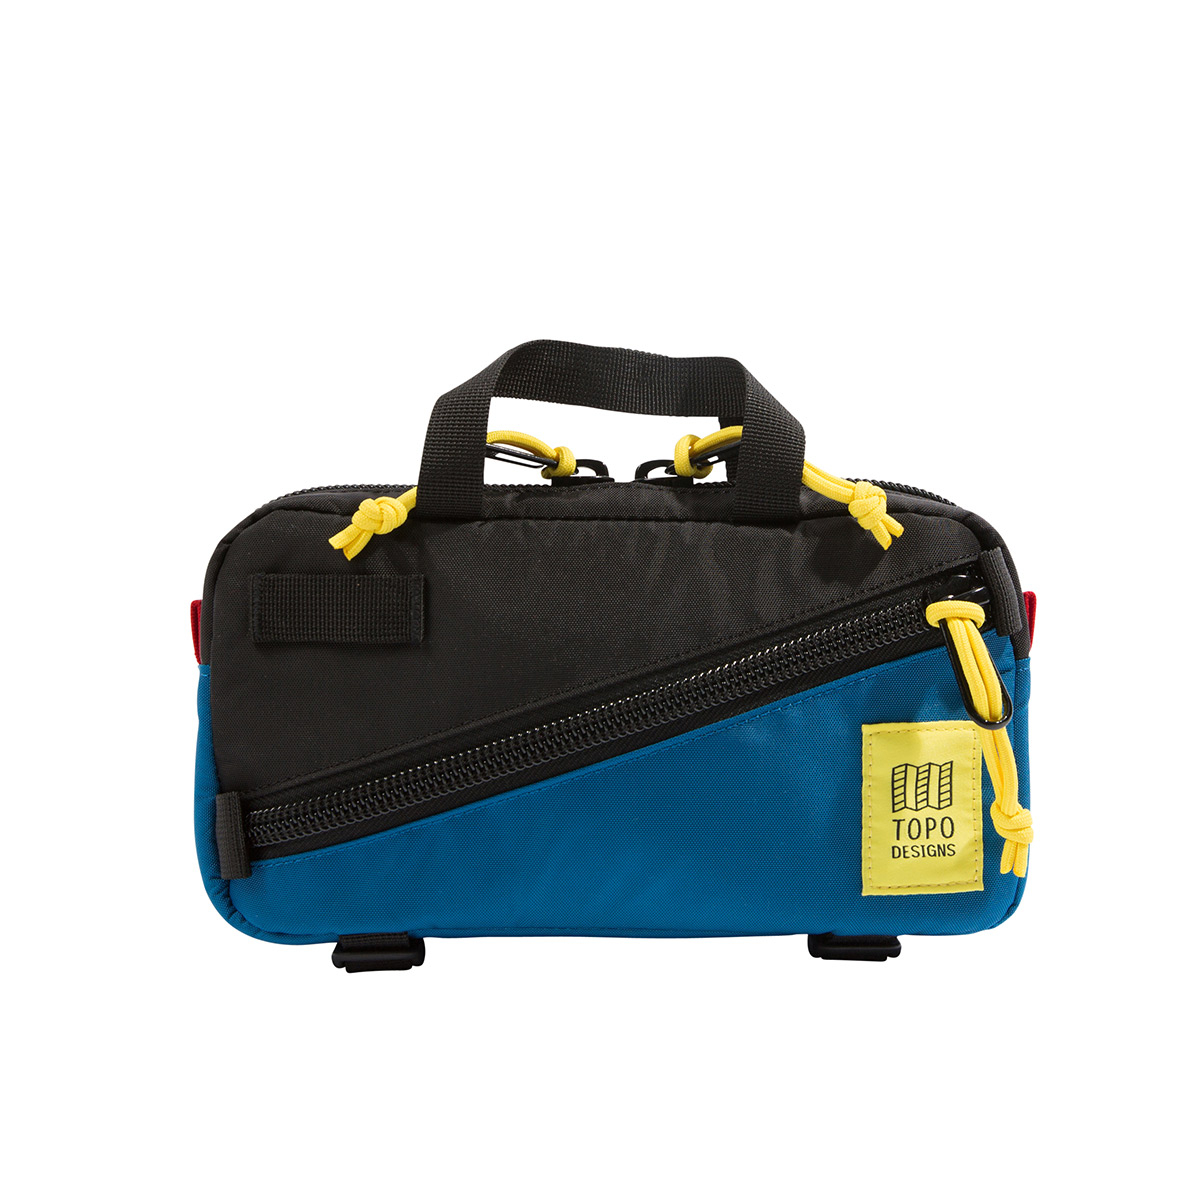 Topo Designs Mini Quick Pack Black/Blue, a well-built, secure bag for travel